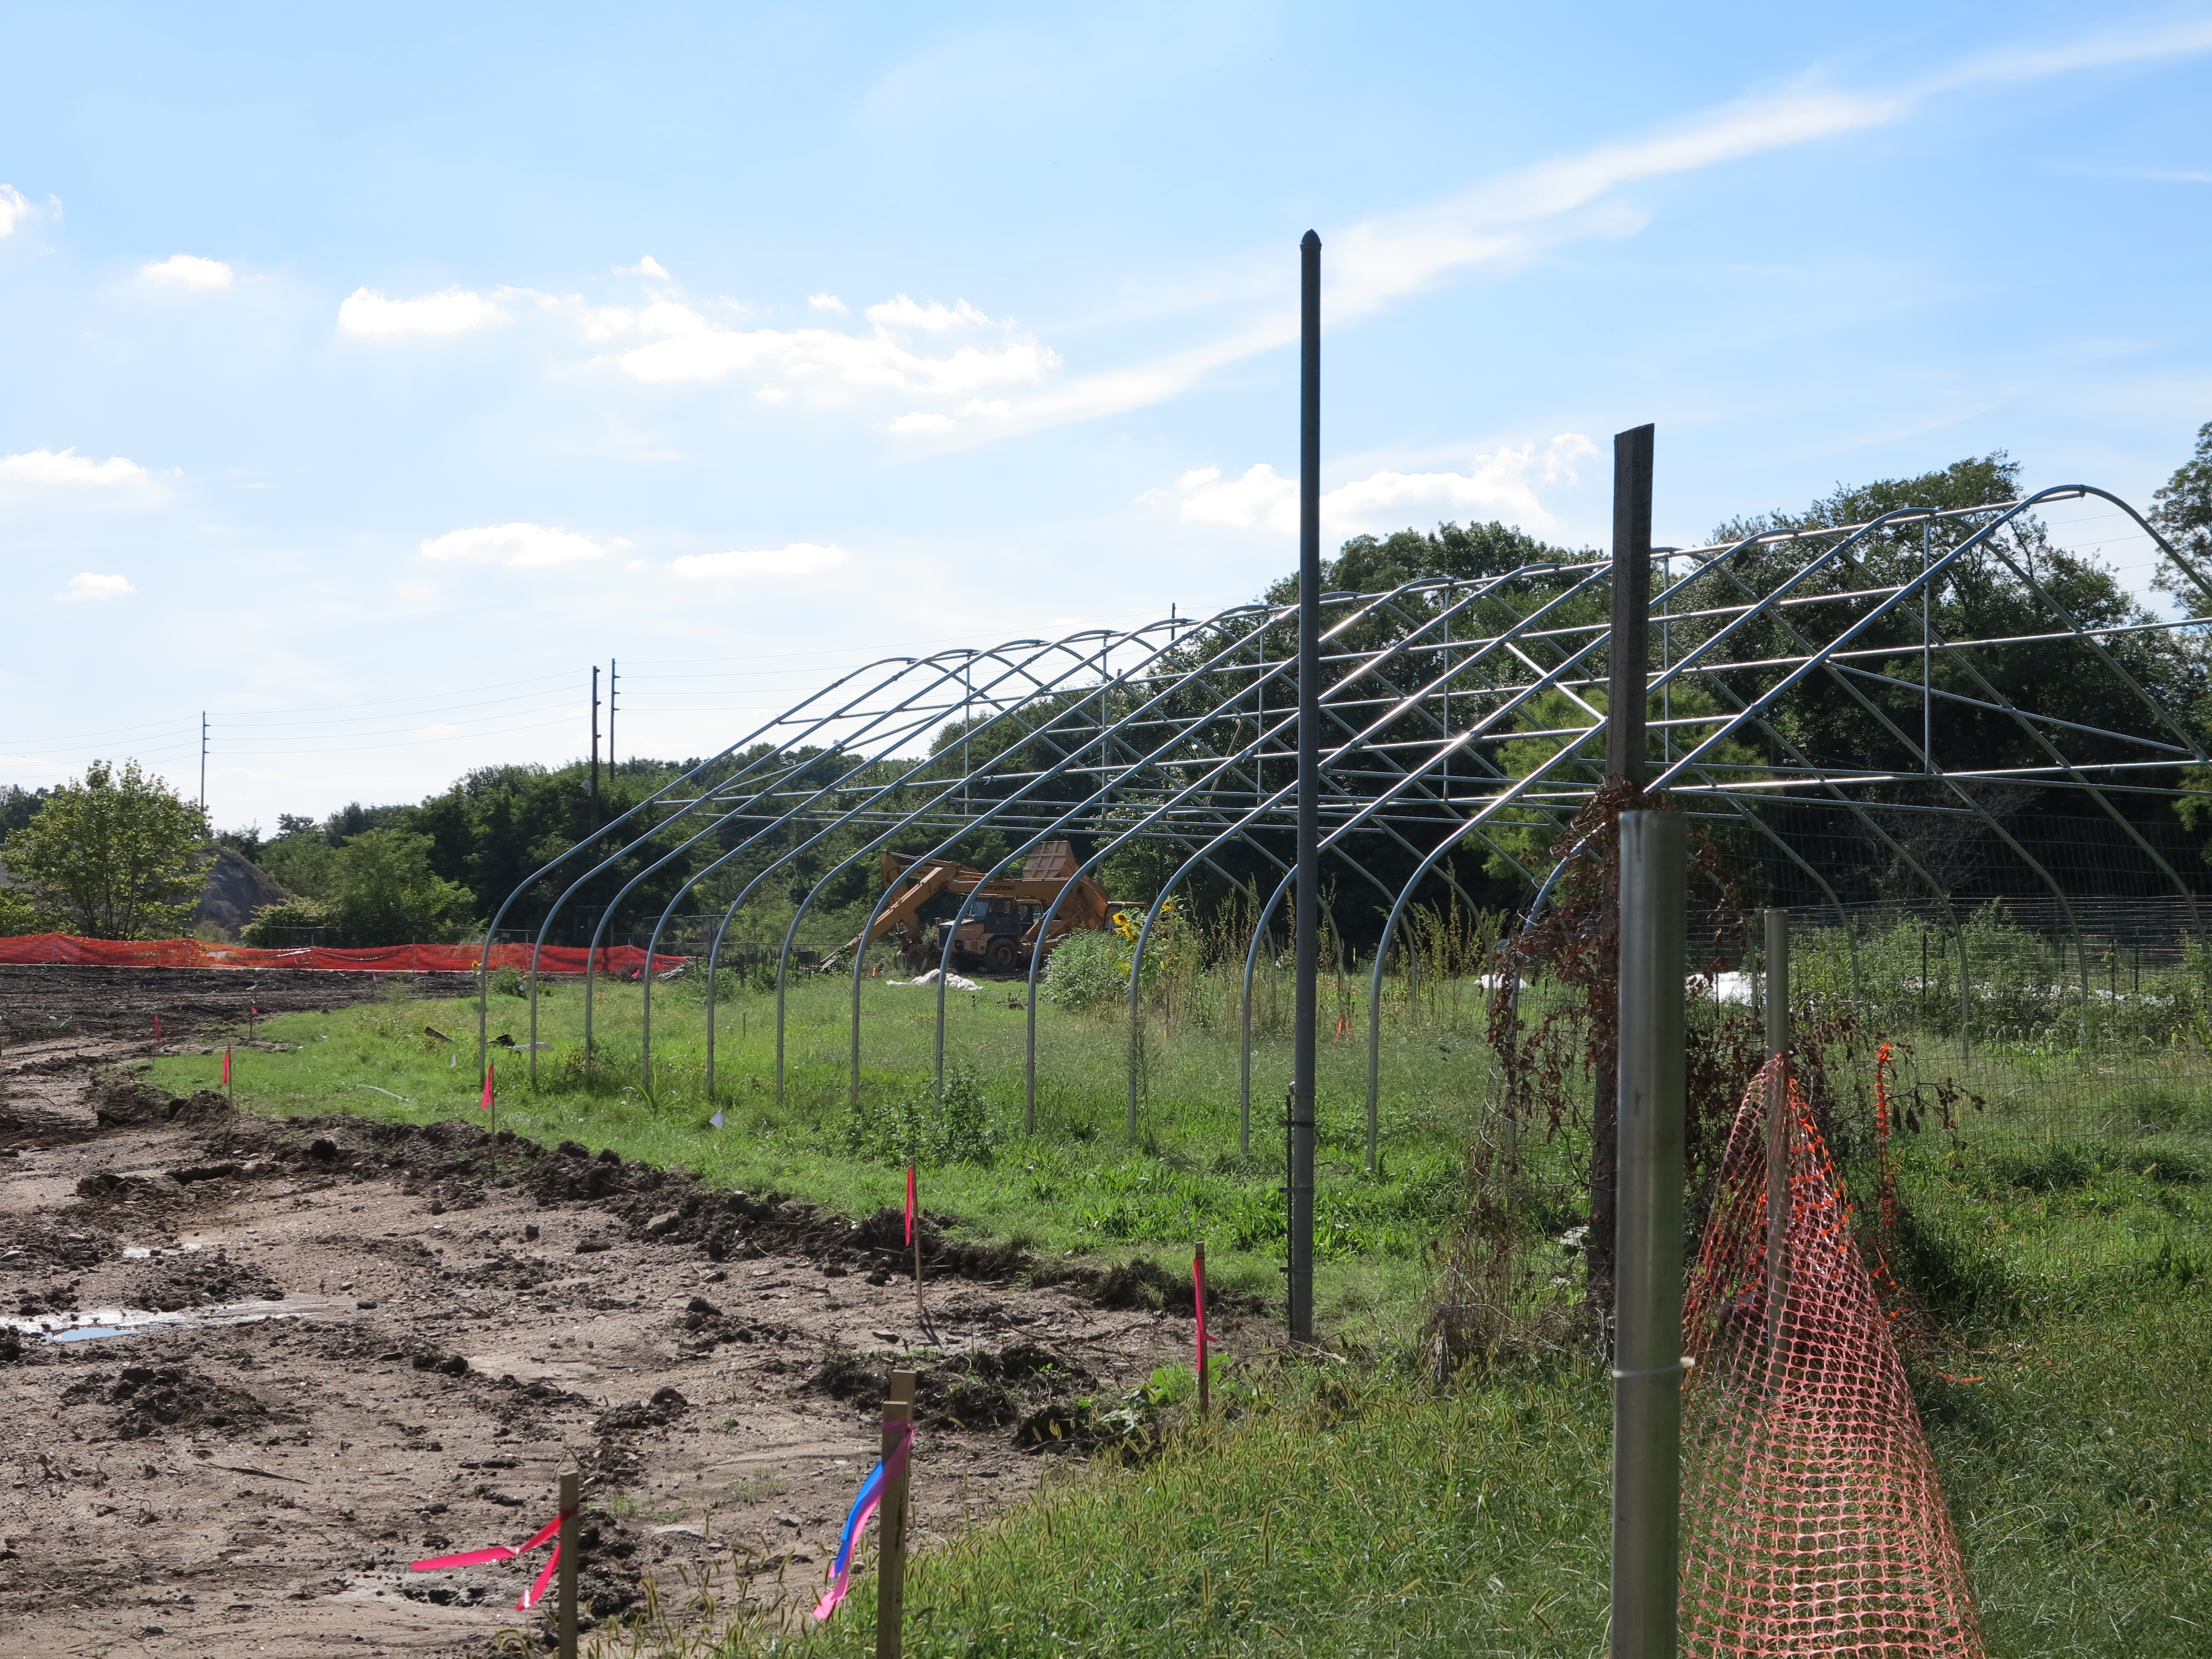 The outermost wetlands planting zone will contain trees and shrubs with edible parts to complement the adjacent community farm